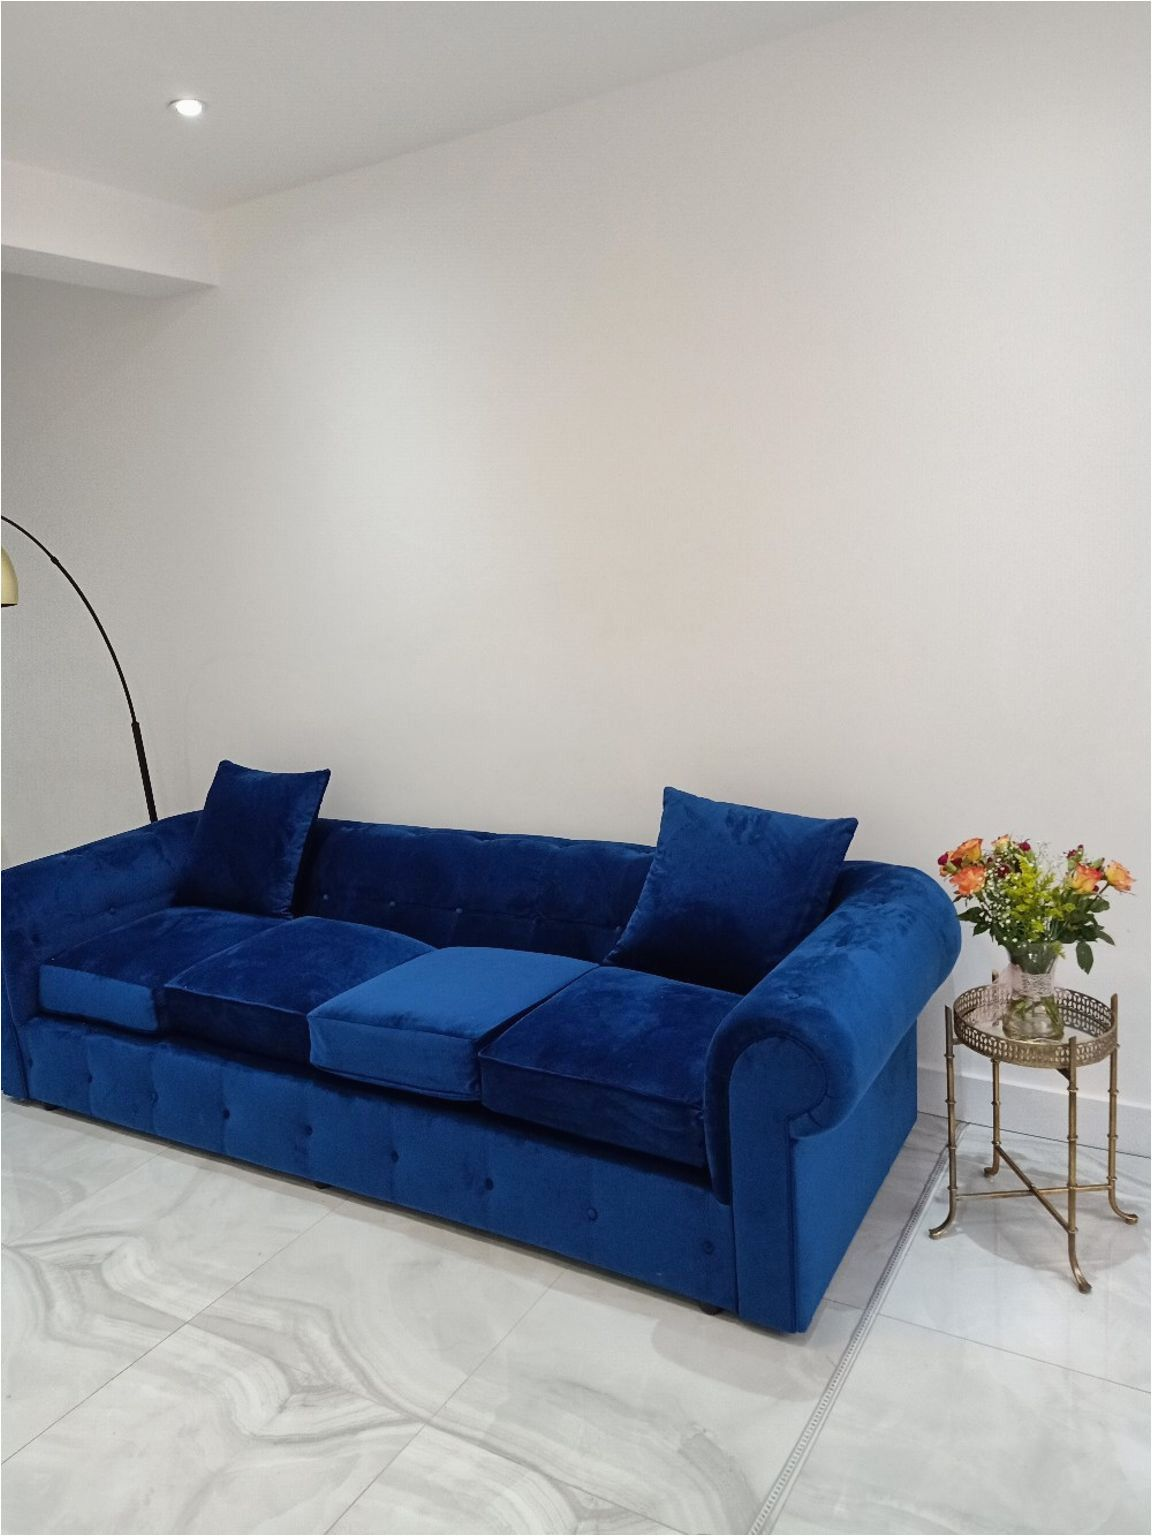 Royal Blue Sofa Bed In 2020 Royal Blue Sofa Blue Chesterfield Sofa Sofa